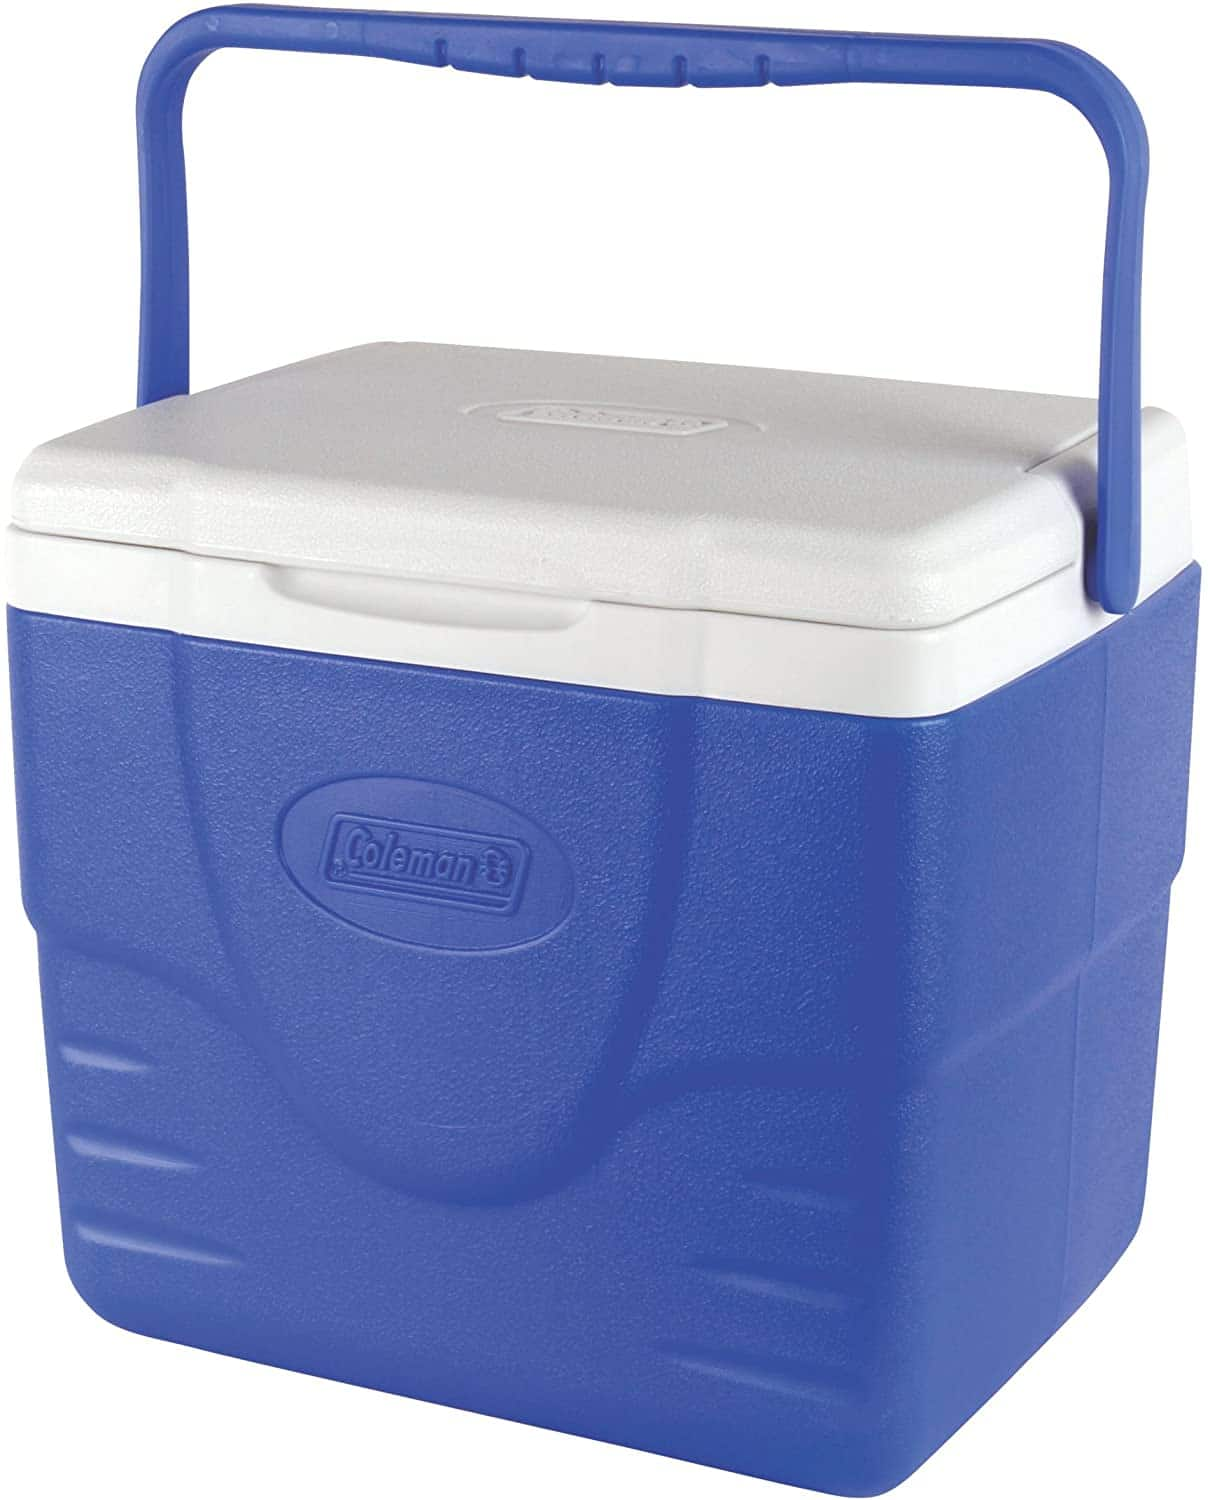 Coleman Excursion Portable Cooler, 9 Quart (Blue) $9.97